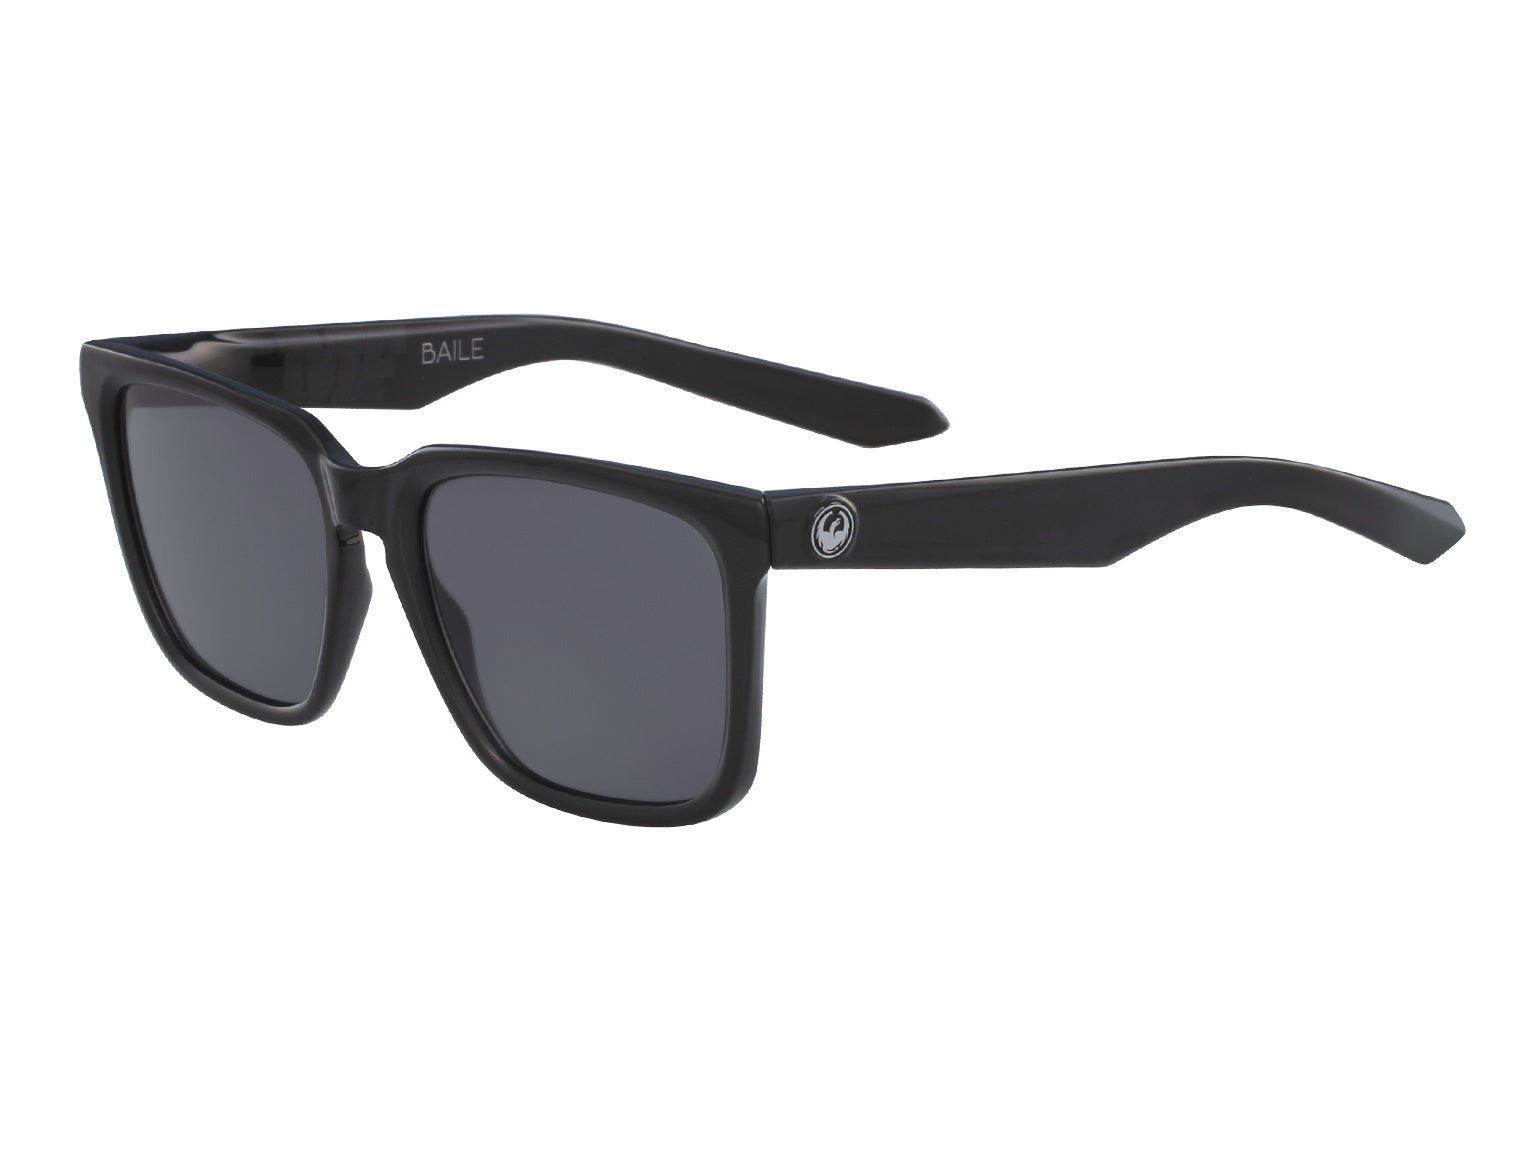 BAILE - Jet Black with Lumalens Smoke Lens